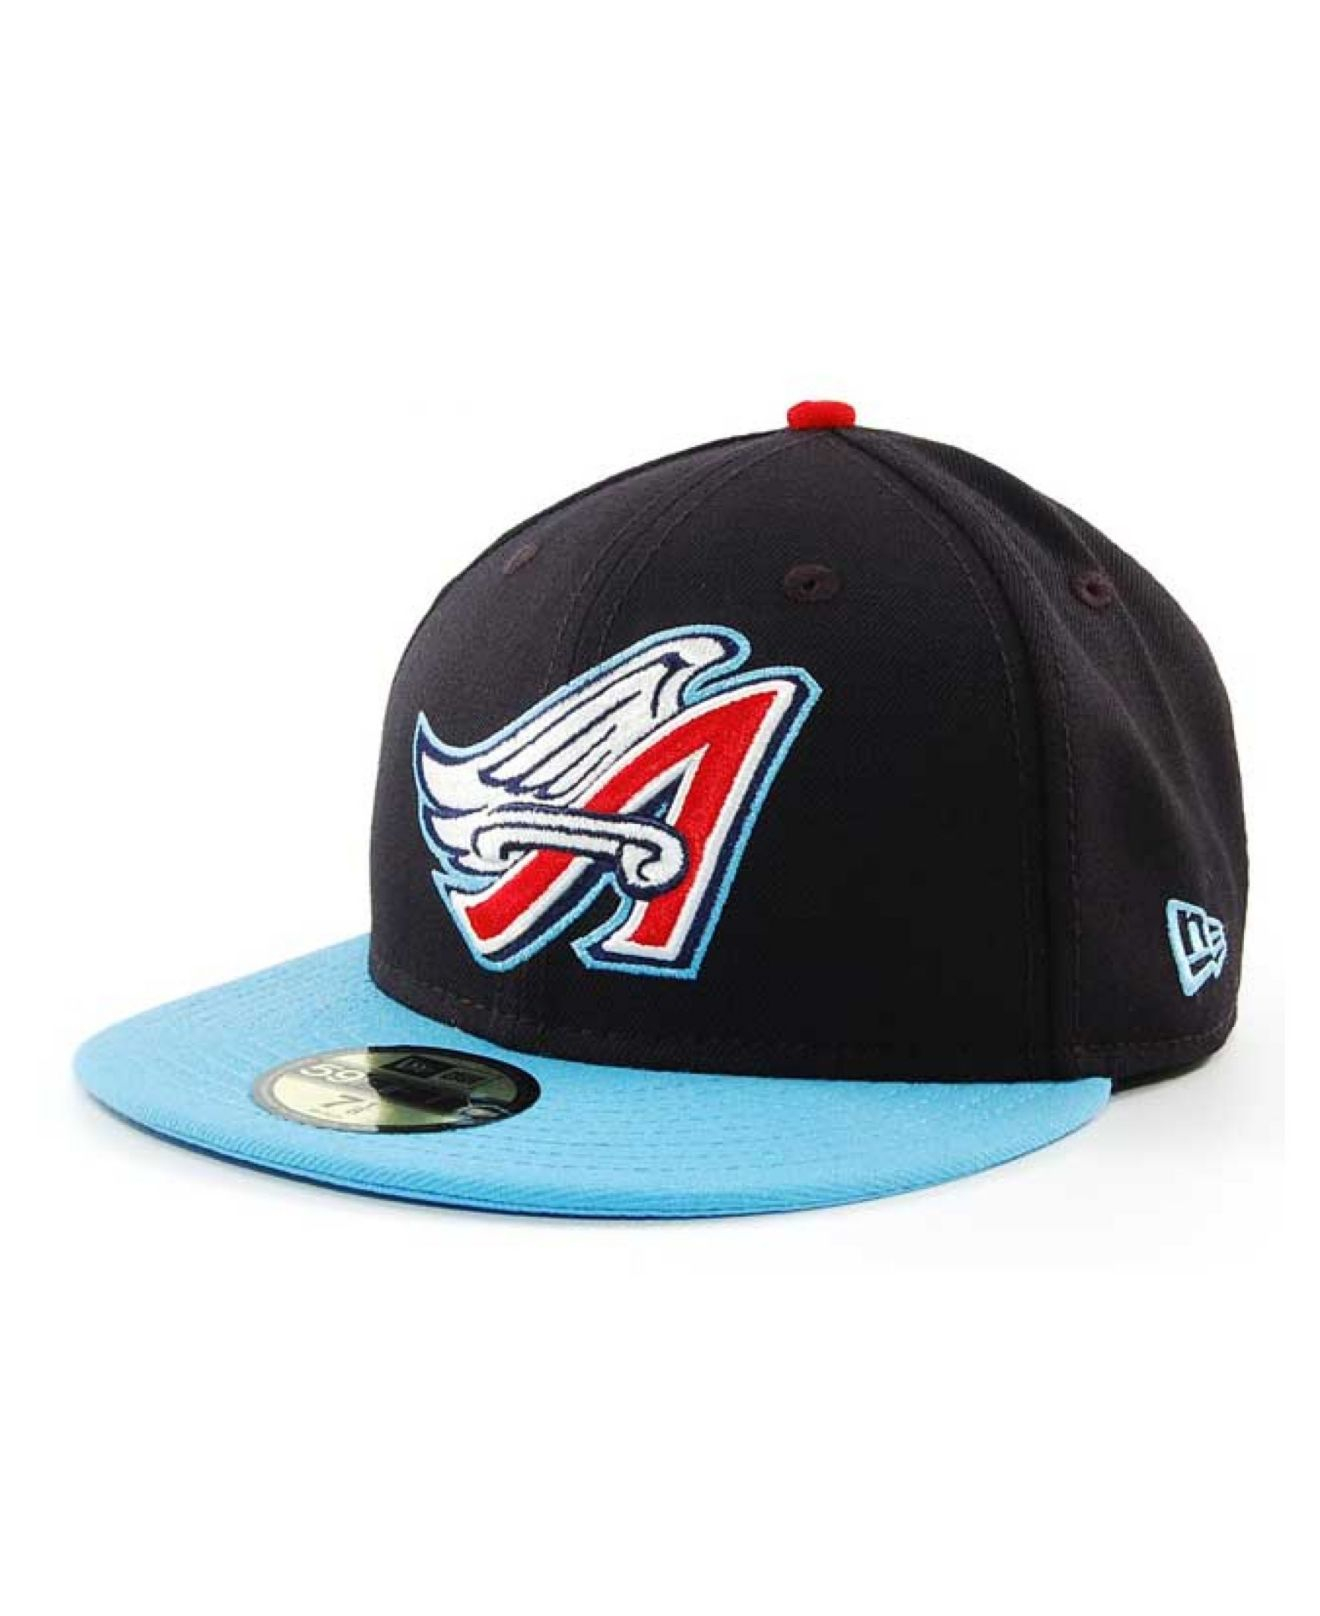 ... czech lyst ktz los angeles angels of anaheim mlb cooperstown 59fifty cap  fe4fa 84122 ... 6c88ceaaabc6